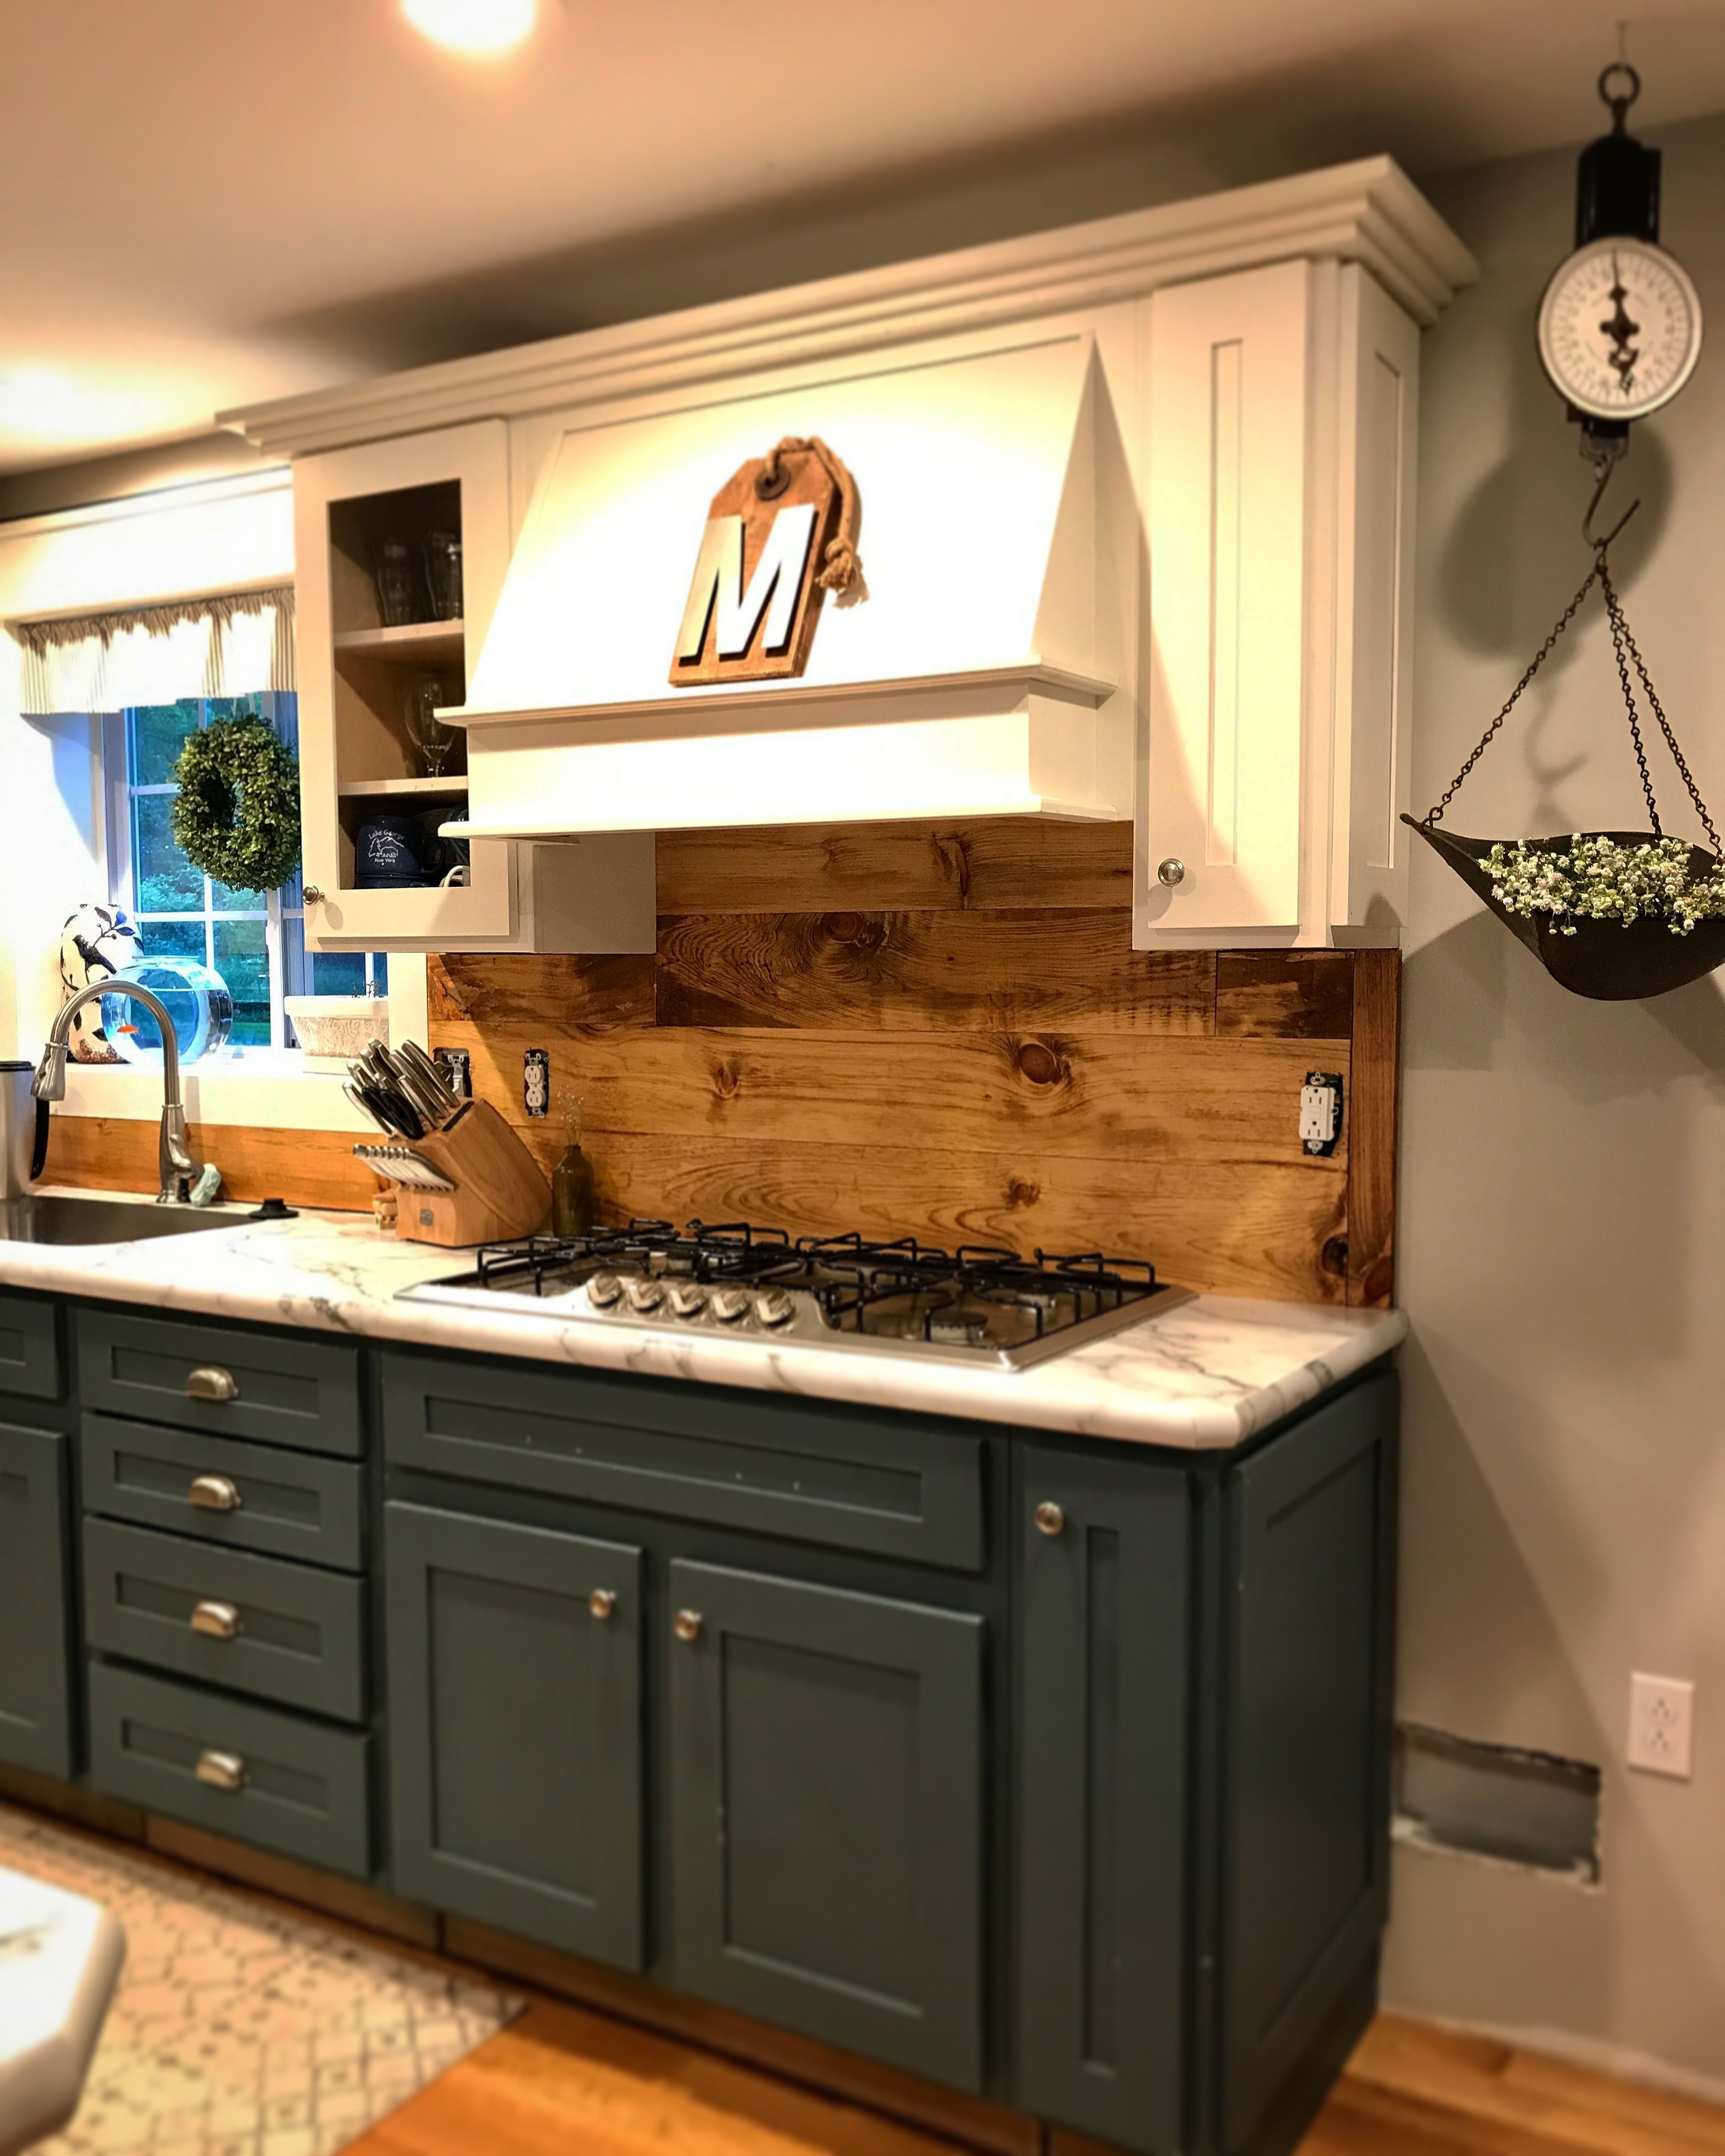 12 Shiplap As Kitchen Backsplash Collections In 2020